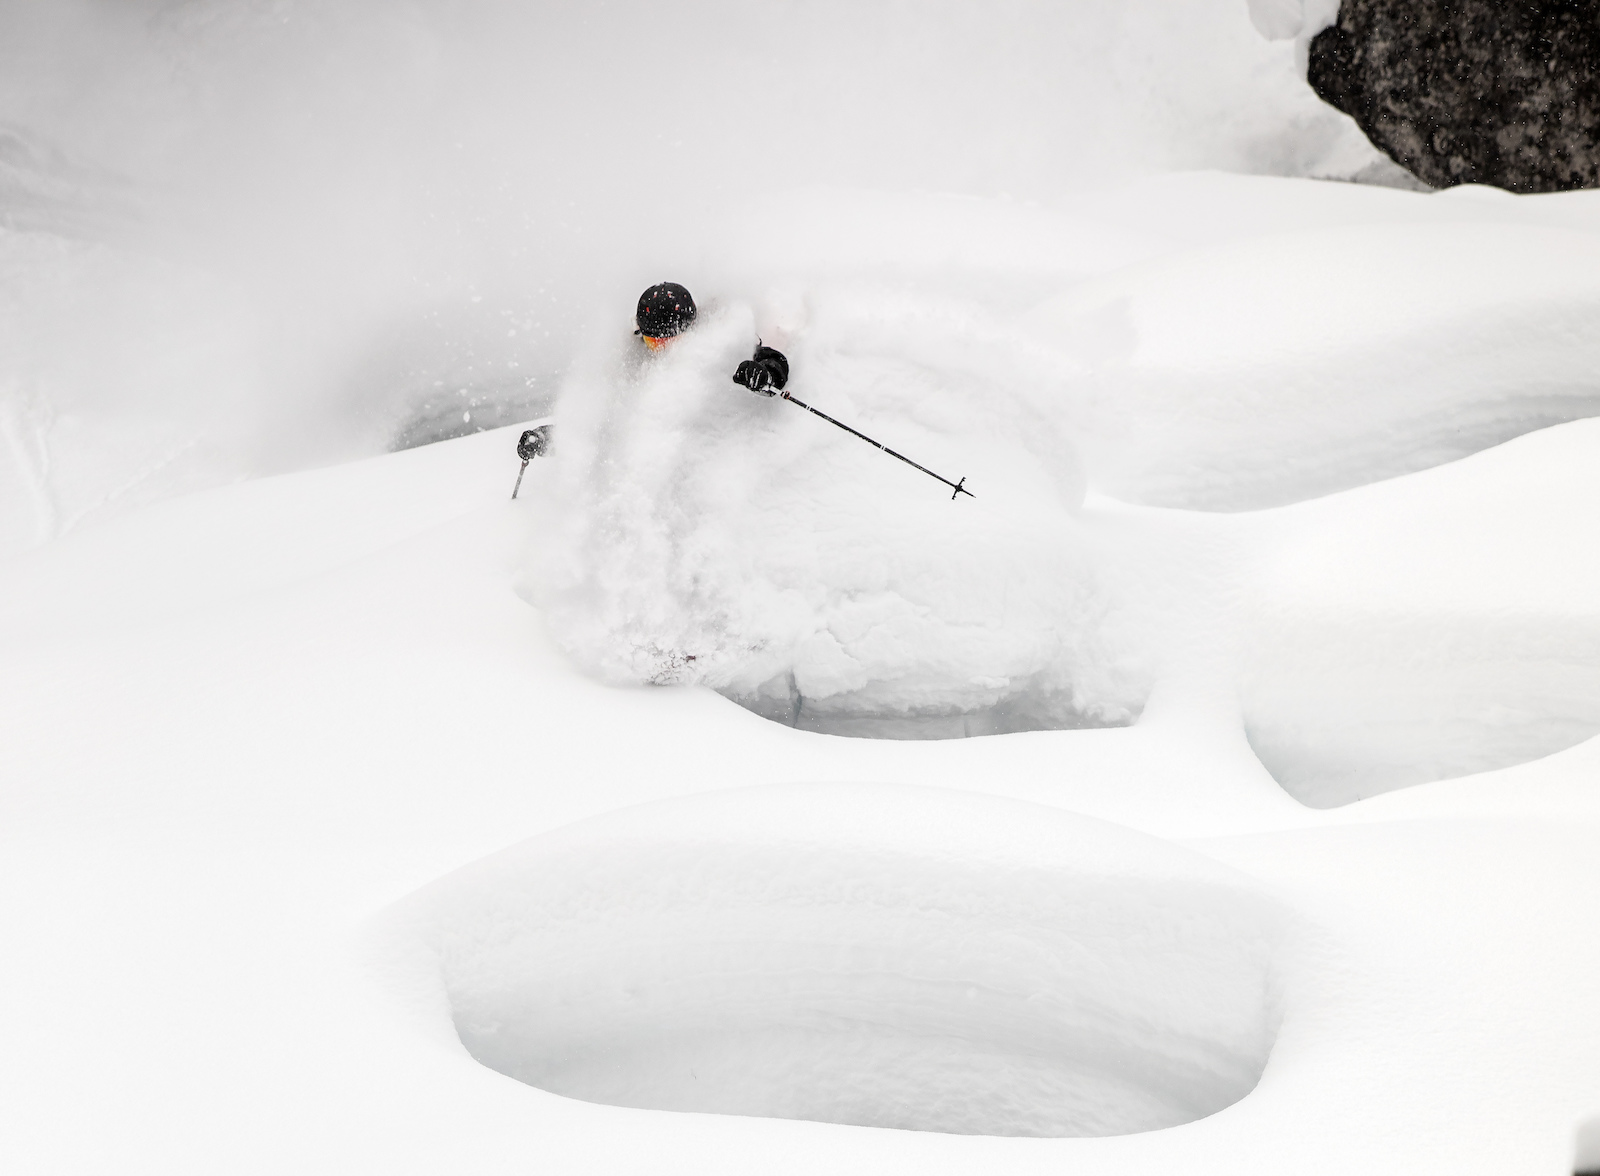 Blasting pow photo by Chris Bezamat